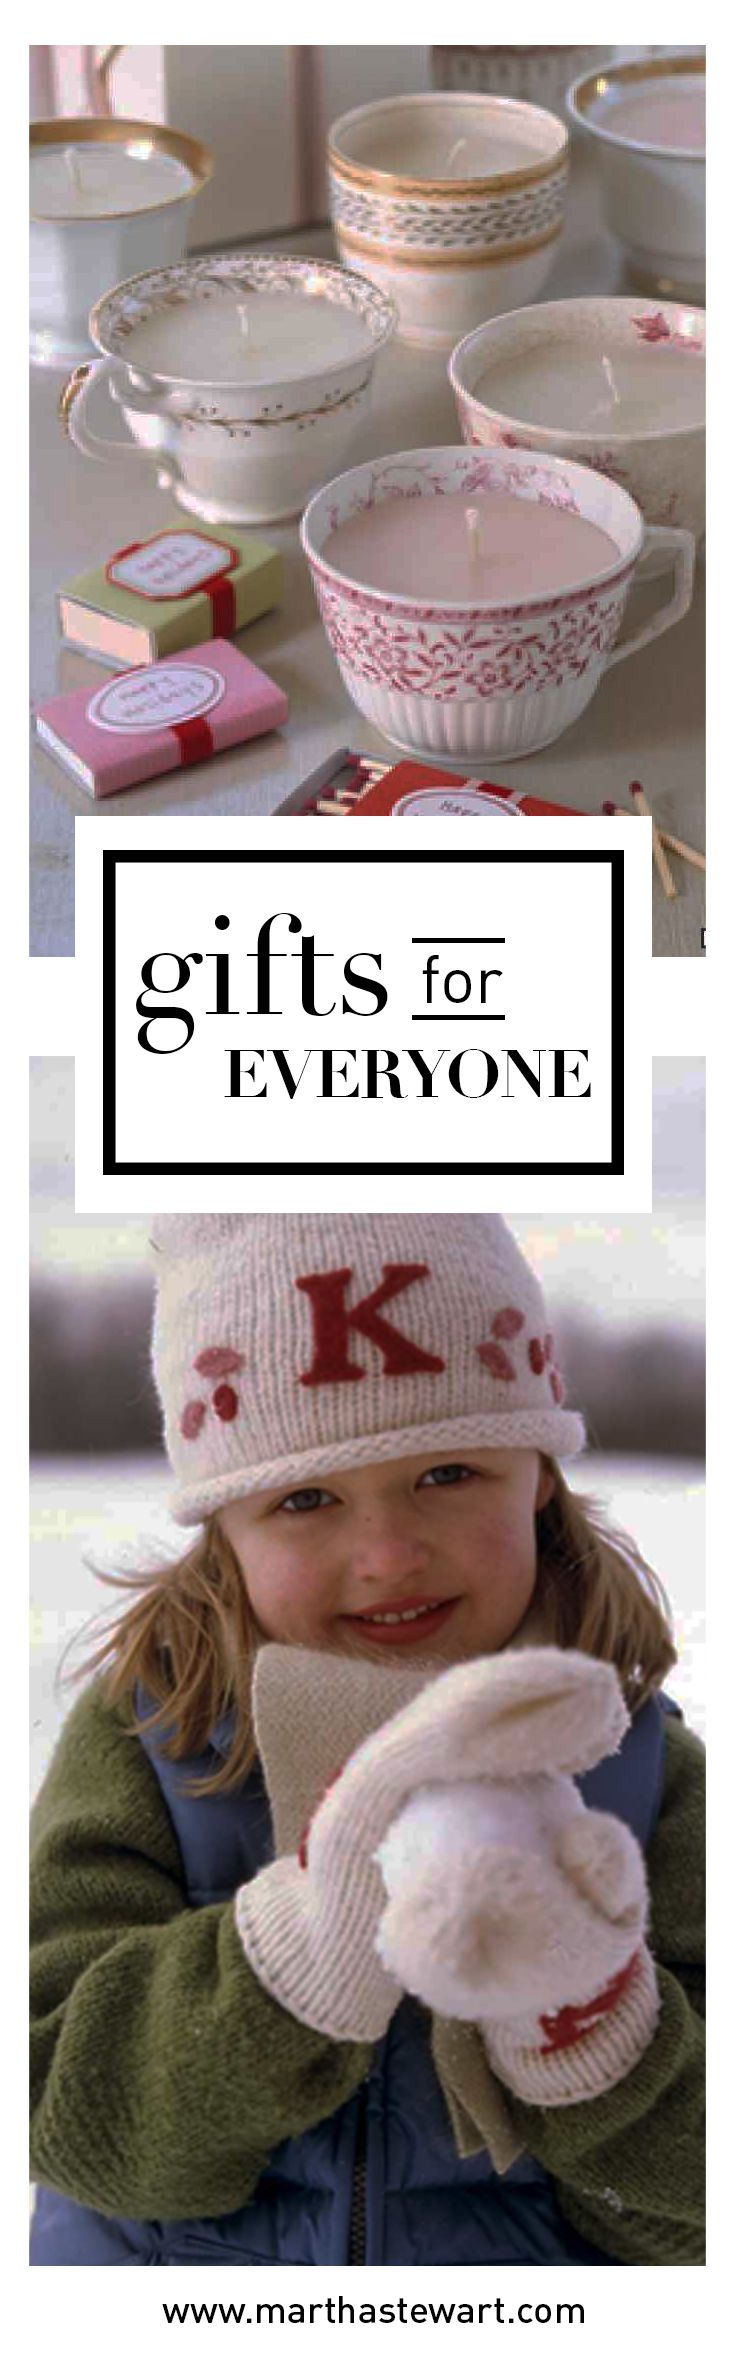 Gifts for Everyone | Martha Stewart Living - You don't have to spend a fortune this year to give out meaningful gifts. With a little forethought and these ideas, you can easily create something for everyone in your life. The best part? You'll be able to add your own personal touch.